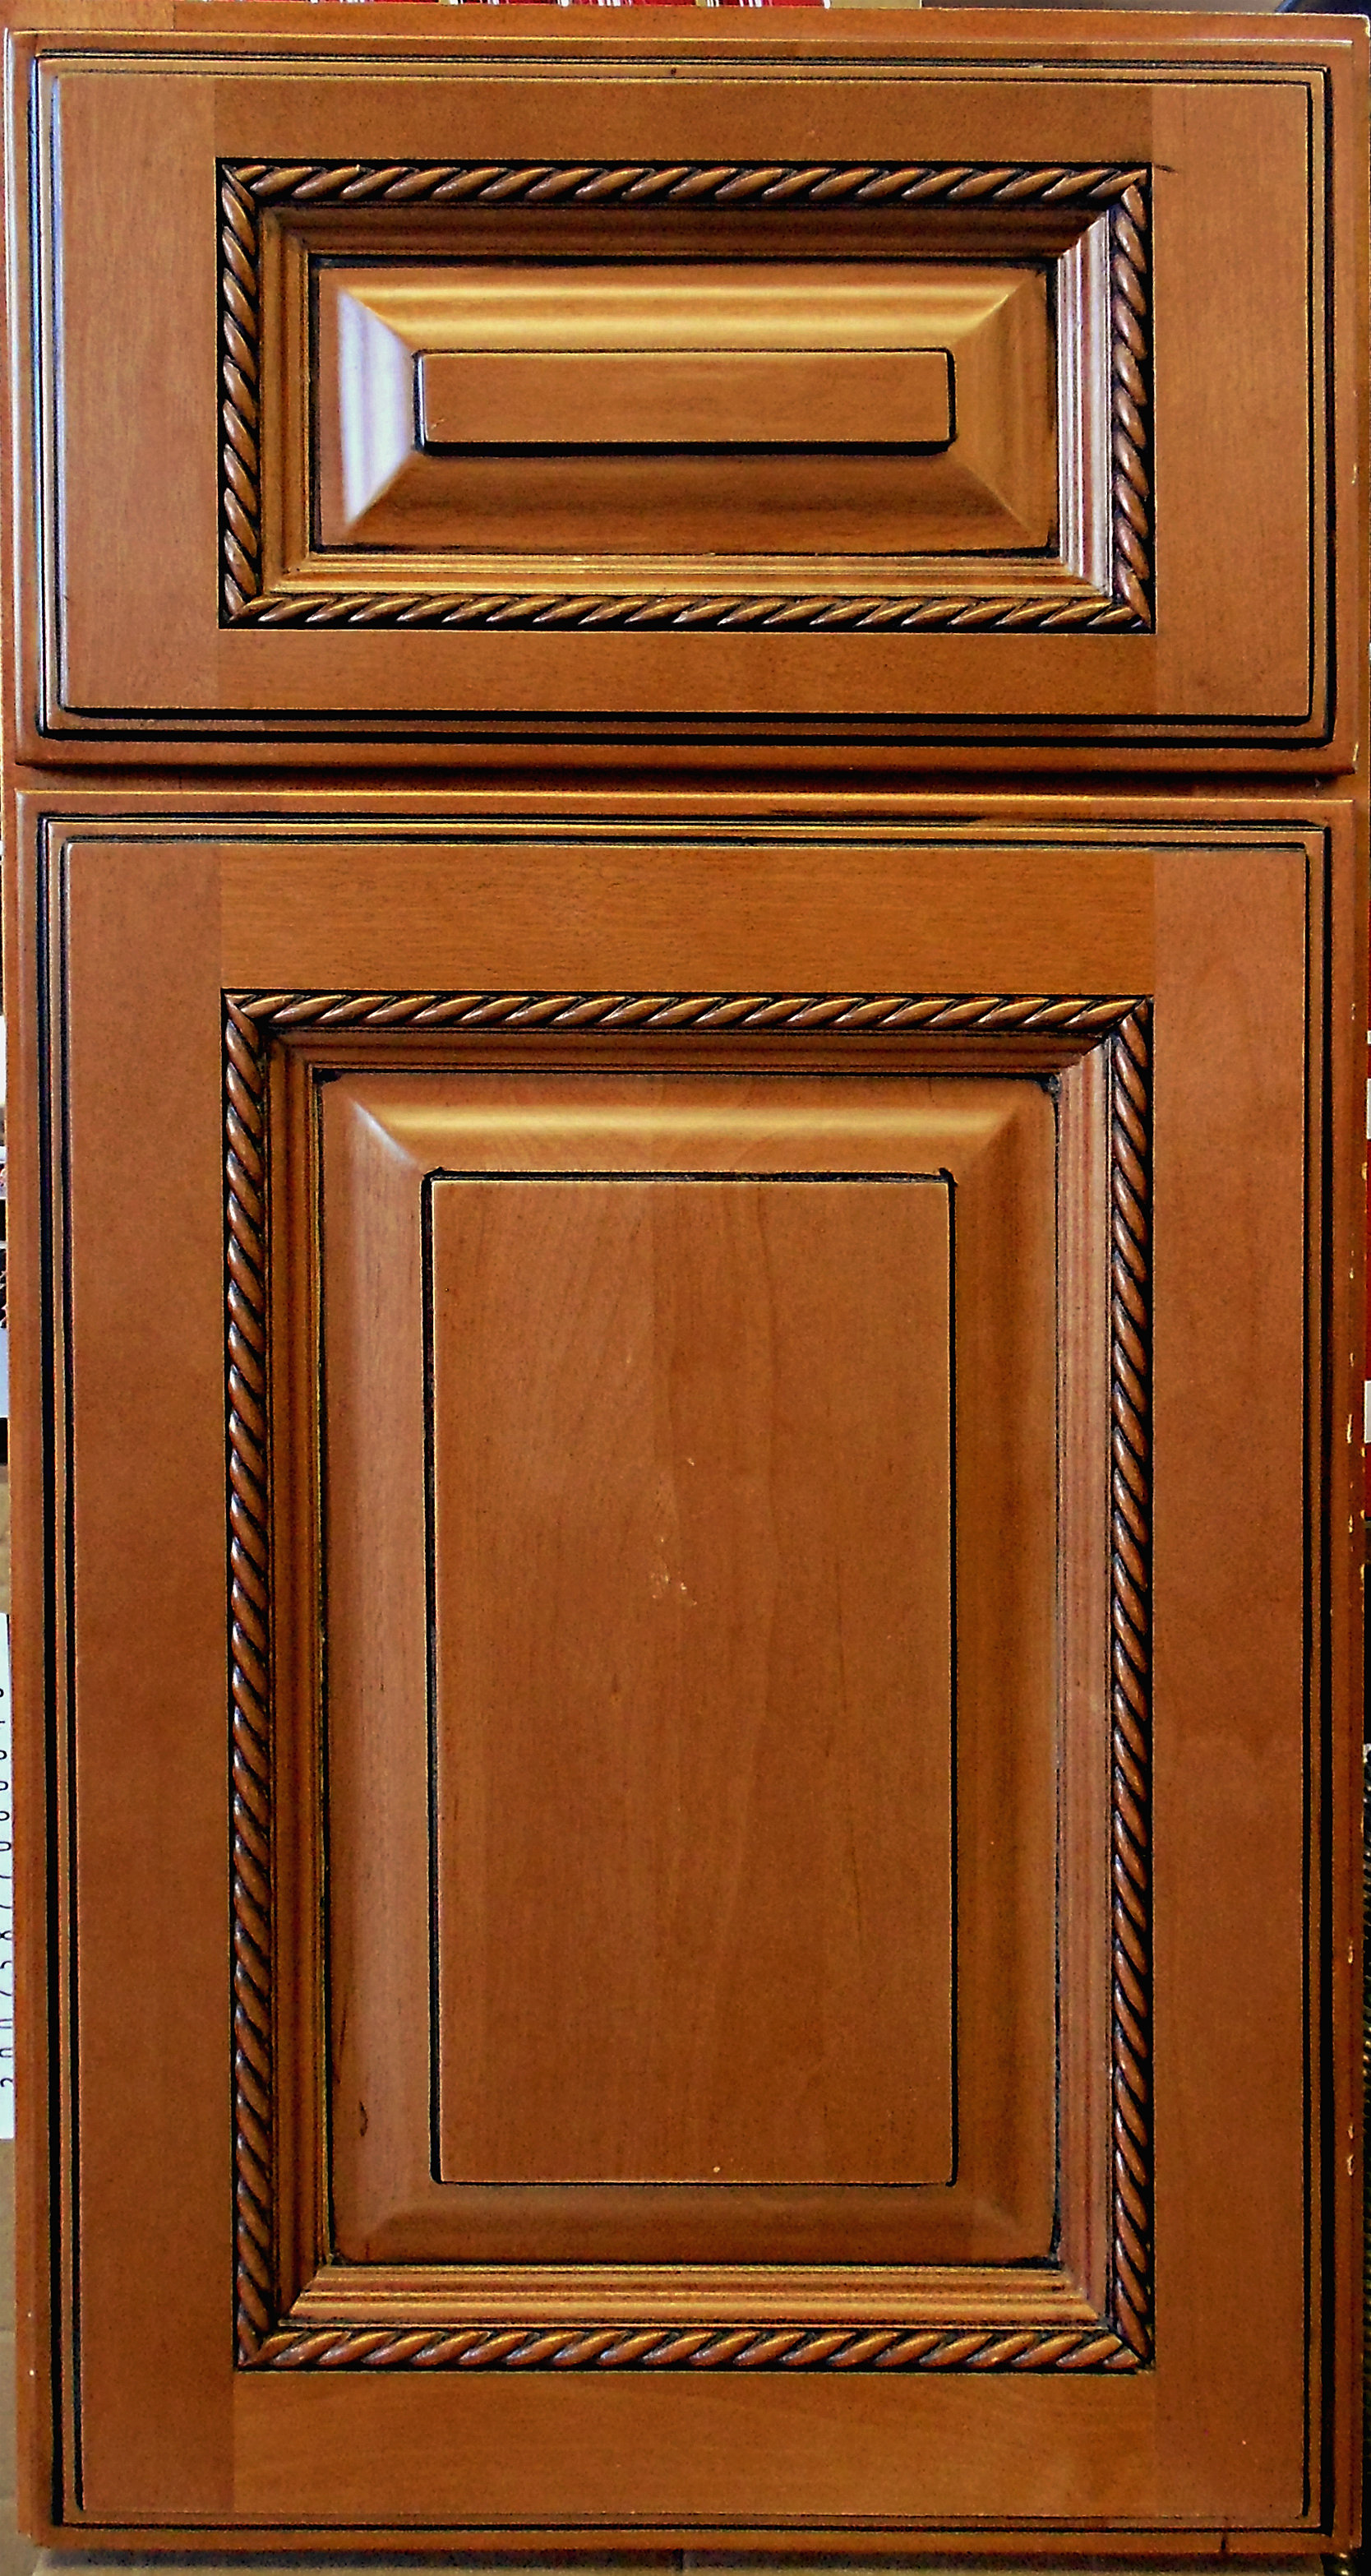 images of kitchen cabinets ask home design perth amboy ultracraft destiny factory builder stores